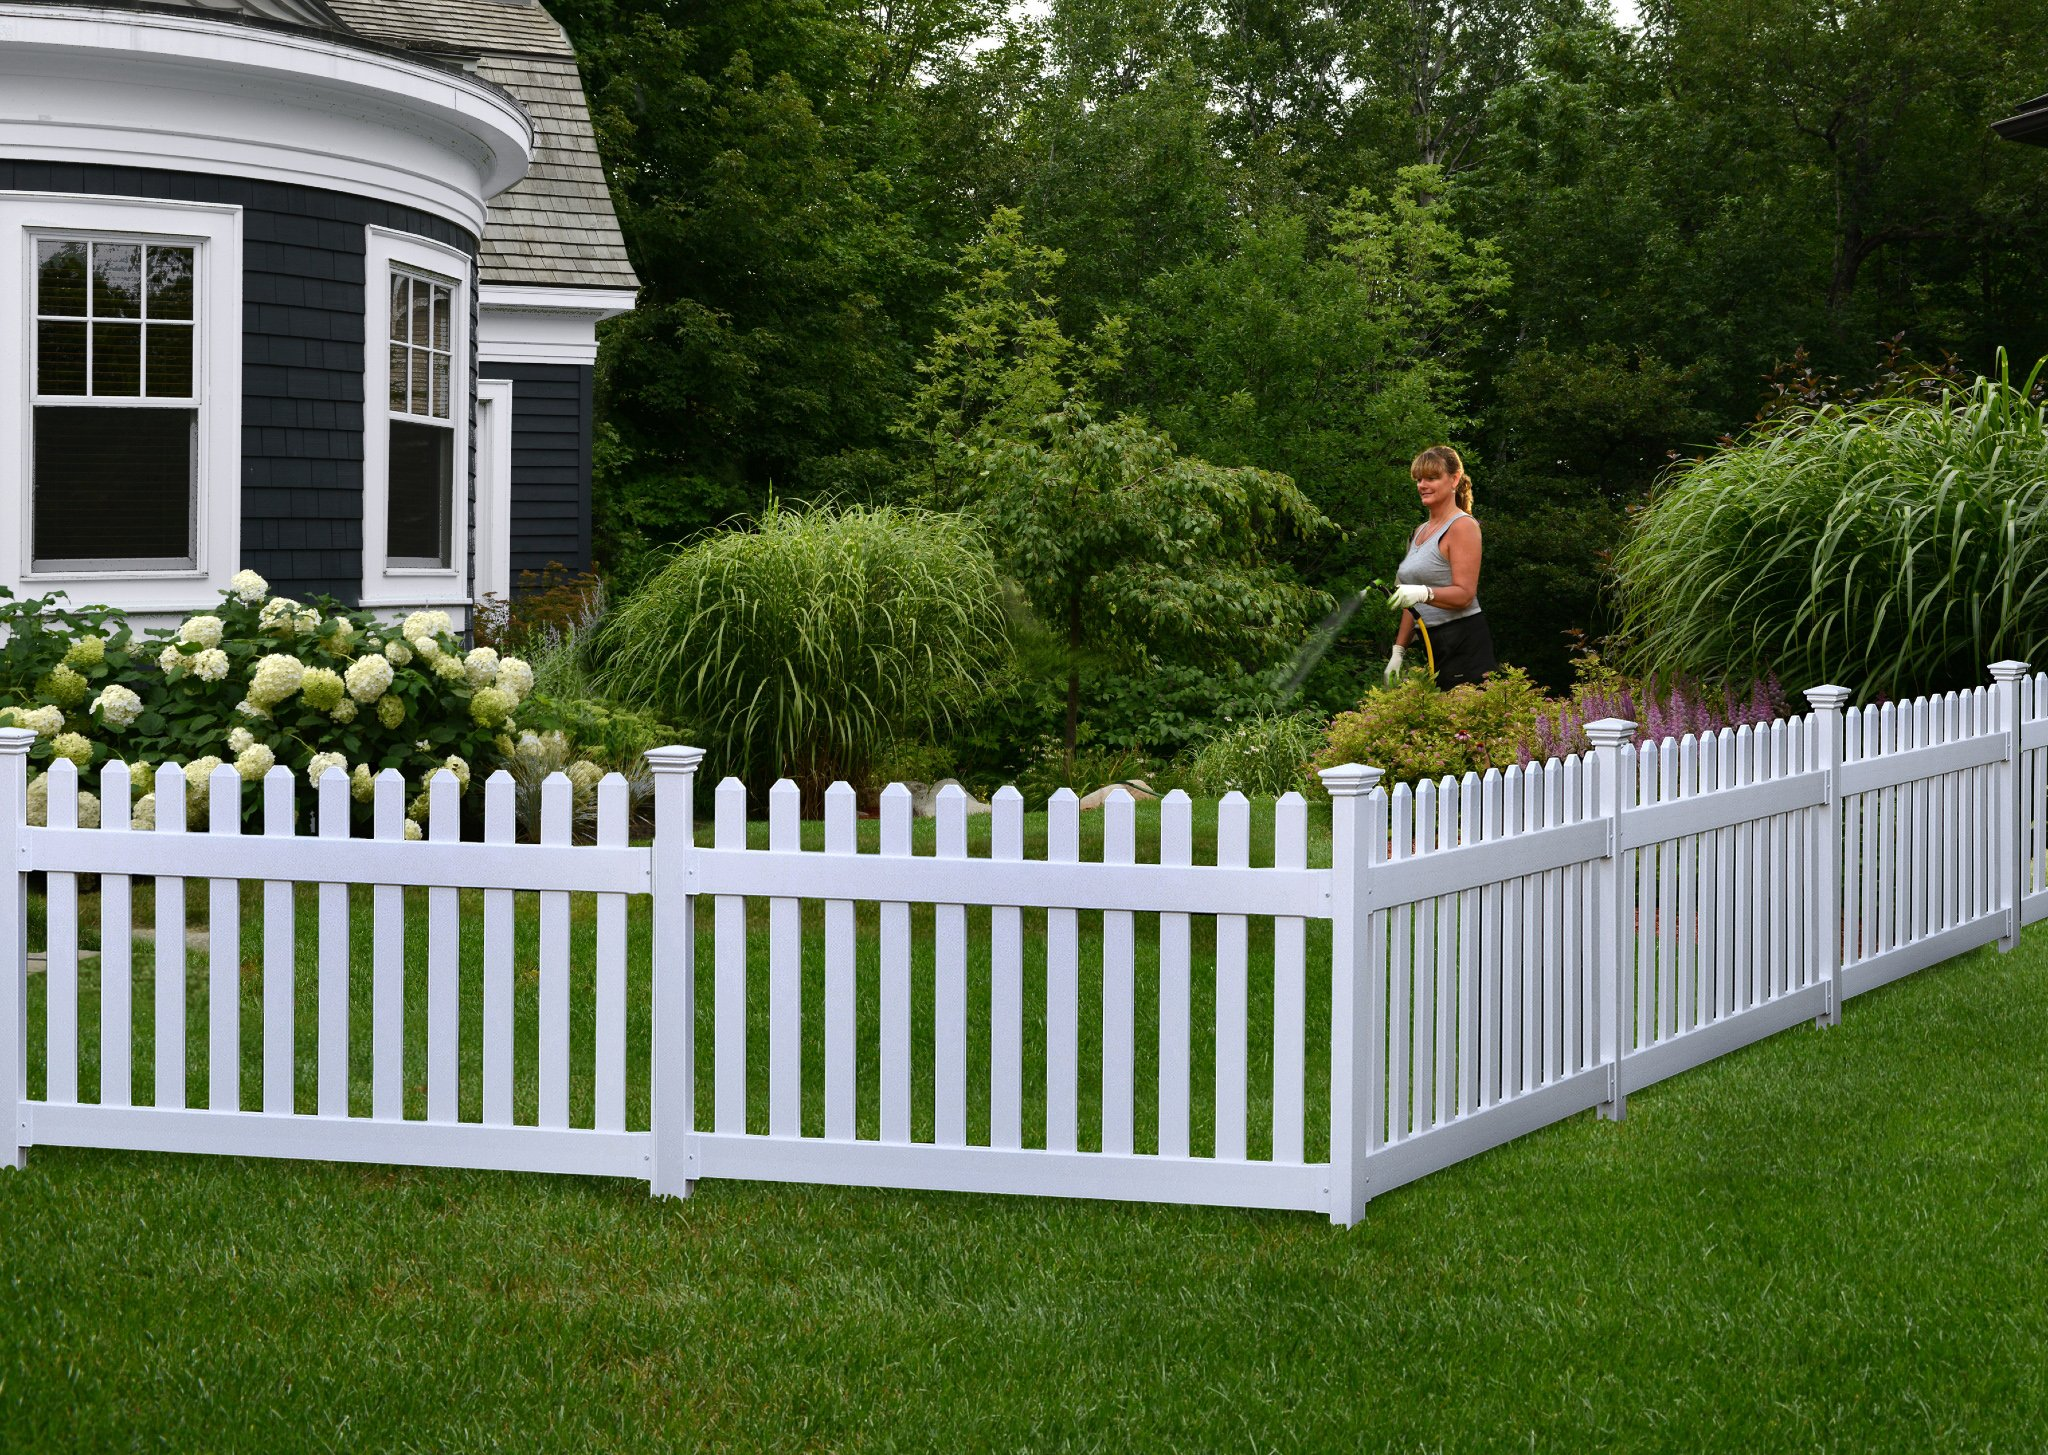 Zippity Outdoor Products ZP19002 High No-Dig Newport Vinyl Permanent Picket Unassembled Yard Fence, 36'', White by Zippity Outdoor Products